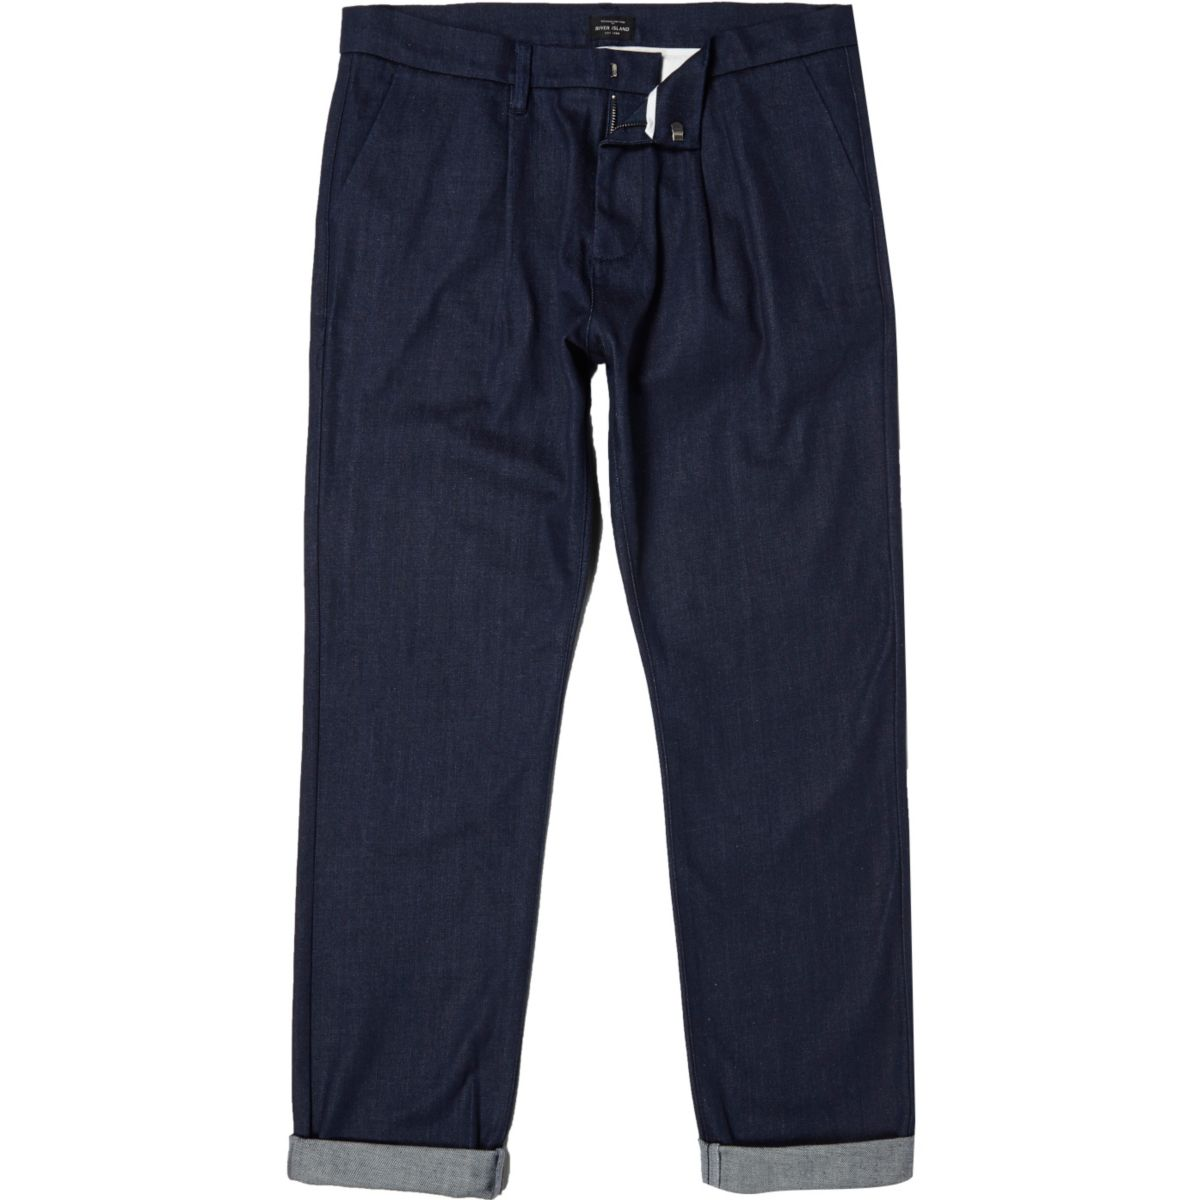 Dark blue tailored denim trousers